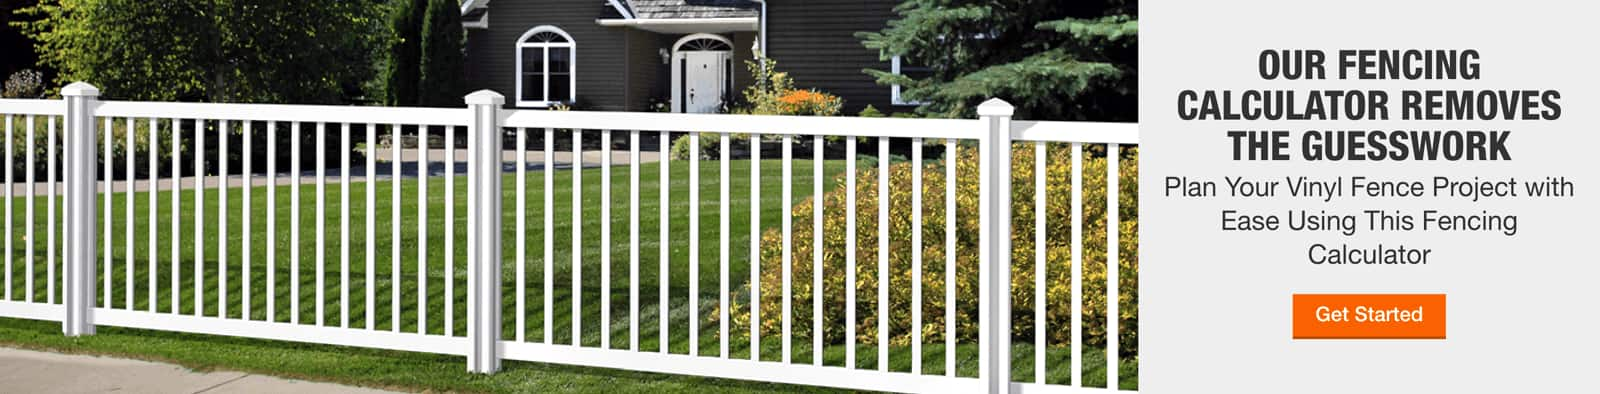 OUR FENCING CALCULATOR REMOVES THE GUESSWORK - Plan your vinyl fence project with ease using this fencing calculator. > GET STARTED